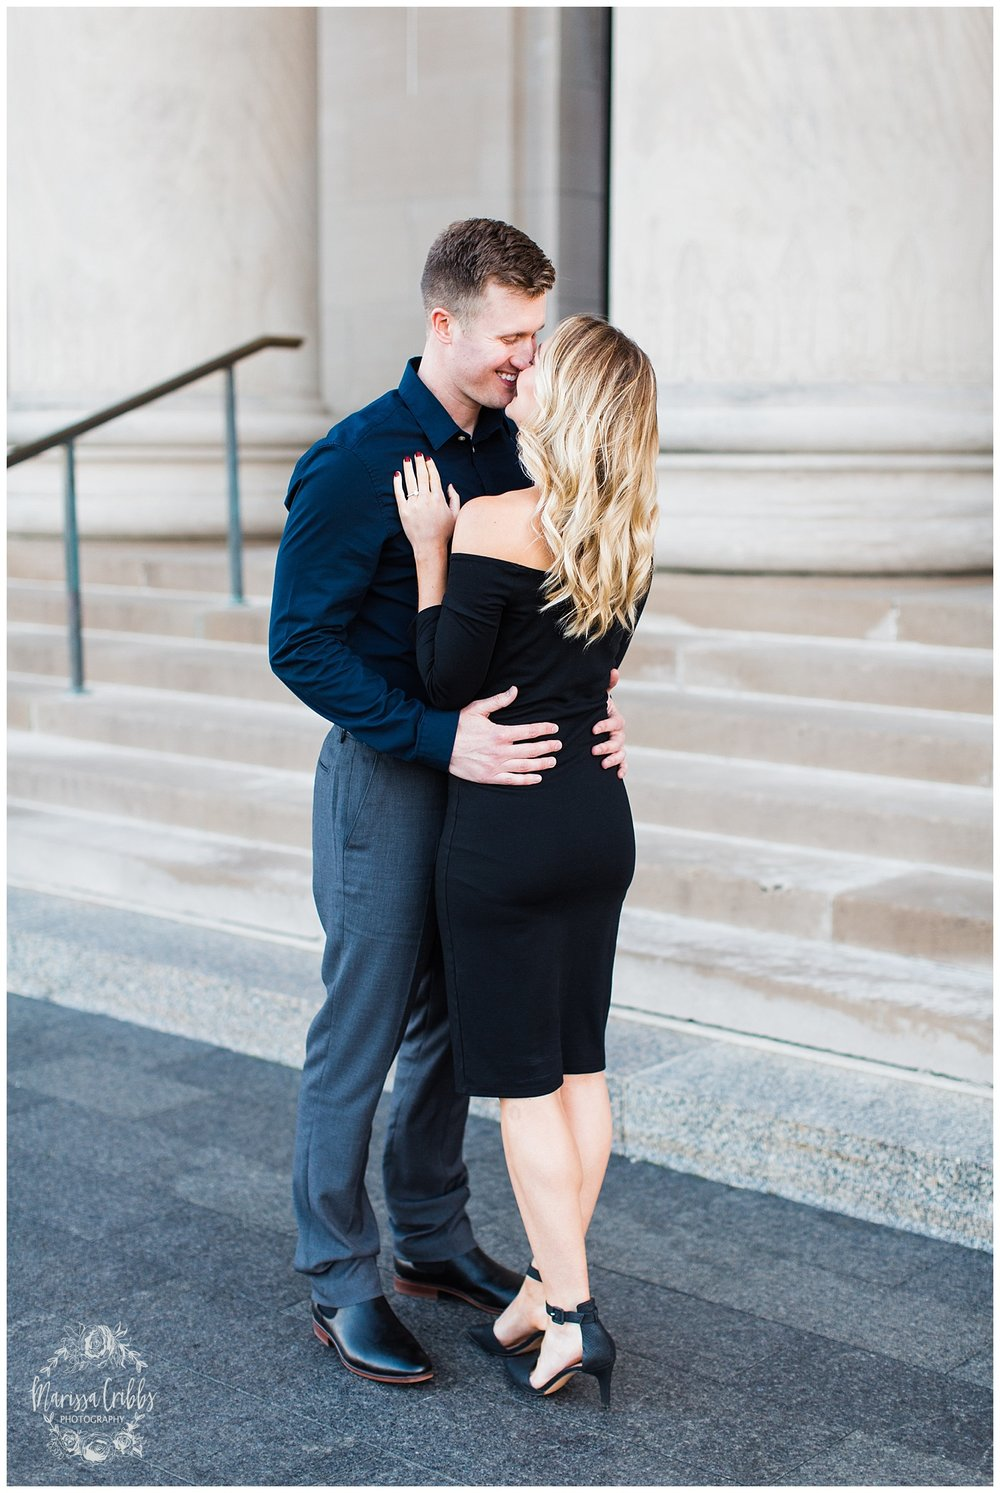 KATE & NATE ENGAGEMENT | NELSON ATKINS | MARISSA CRIBBS PHOTOGRAPHY_3580.jpg